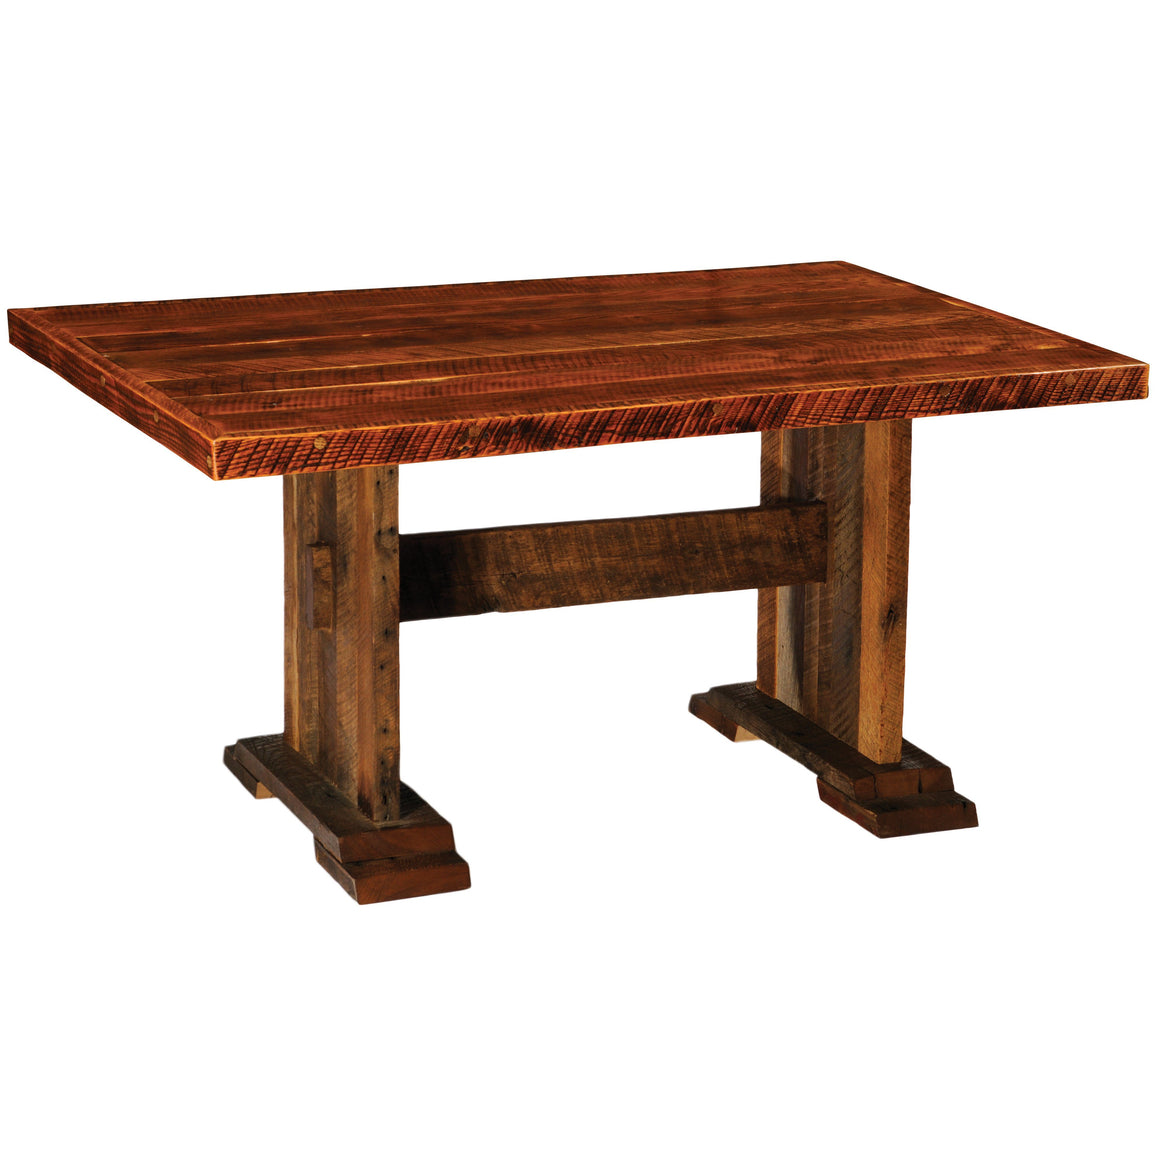 Barnwood Harvest Dining Table - 5, 6, 7, 8 Foot with  Artisan Top - Rustic Deco Incorporated